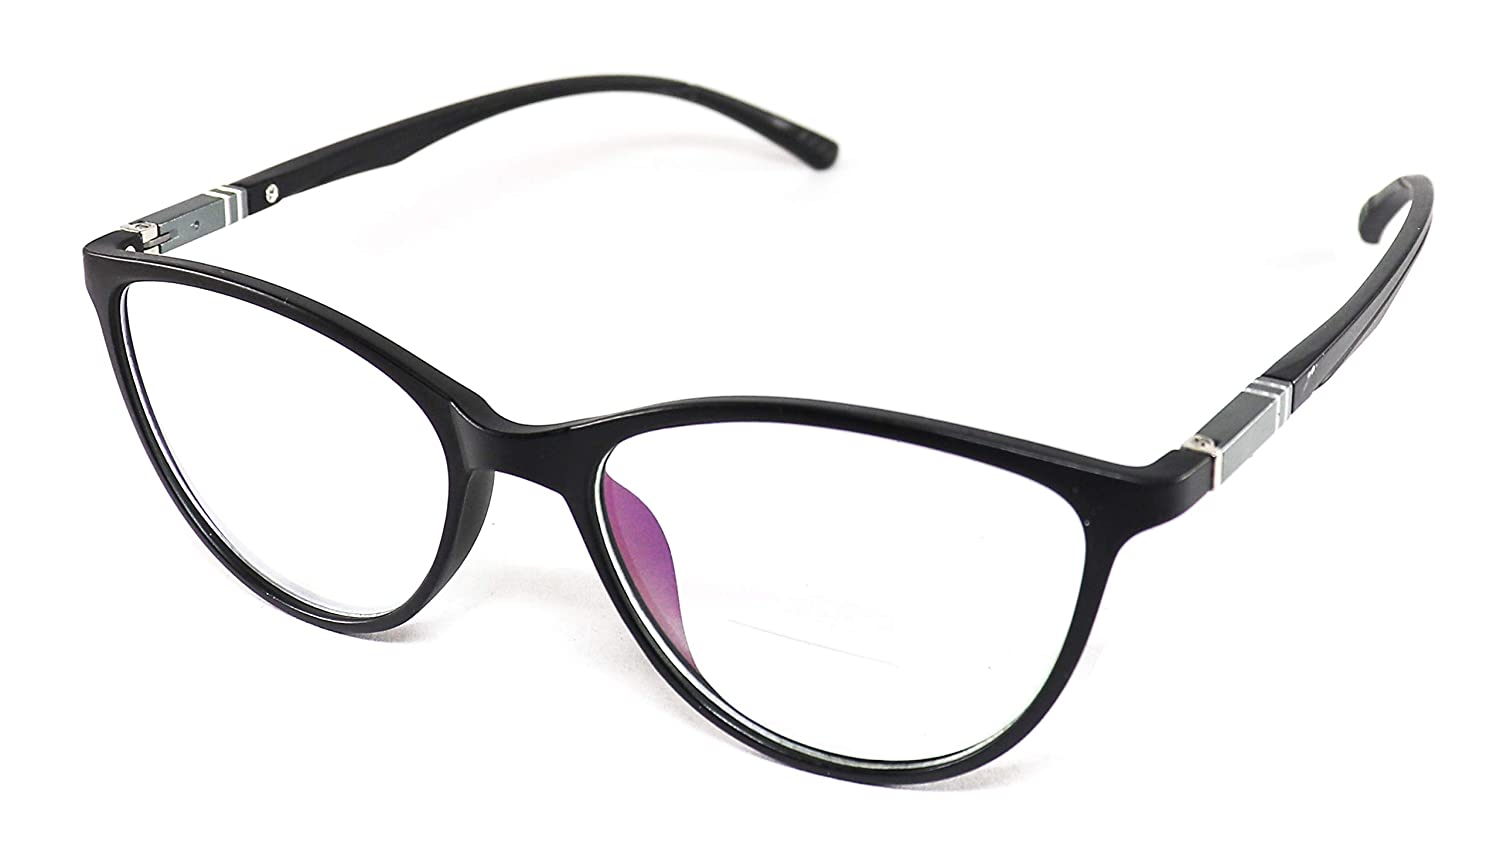 5e942a43f2c Justkartit Black Color Cat Eye Shape Women Full Rim Spectacle Frame (Medium  Size Light Weight Cat Eye Glass)  Amazon.in  Clothing   Accessories